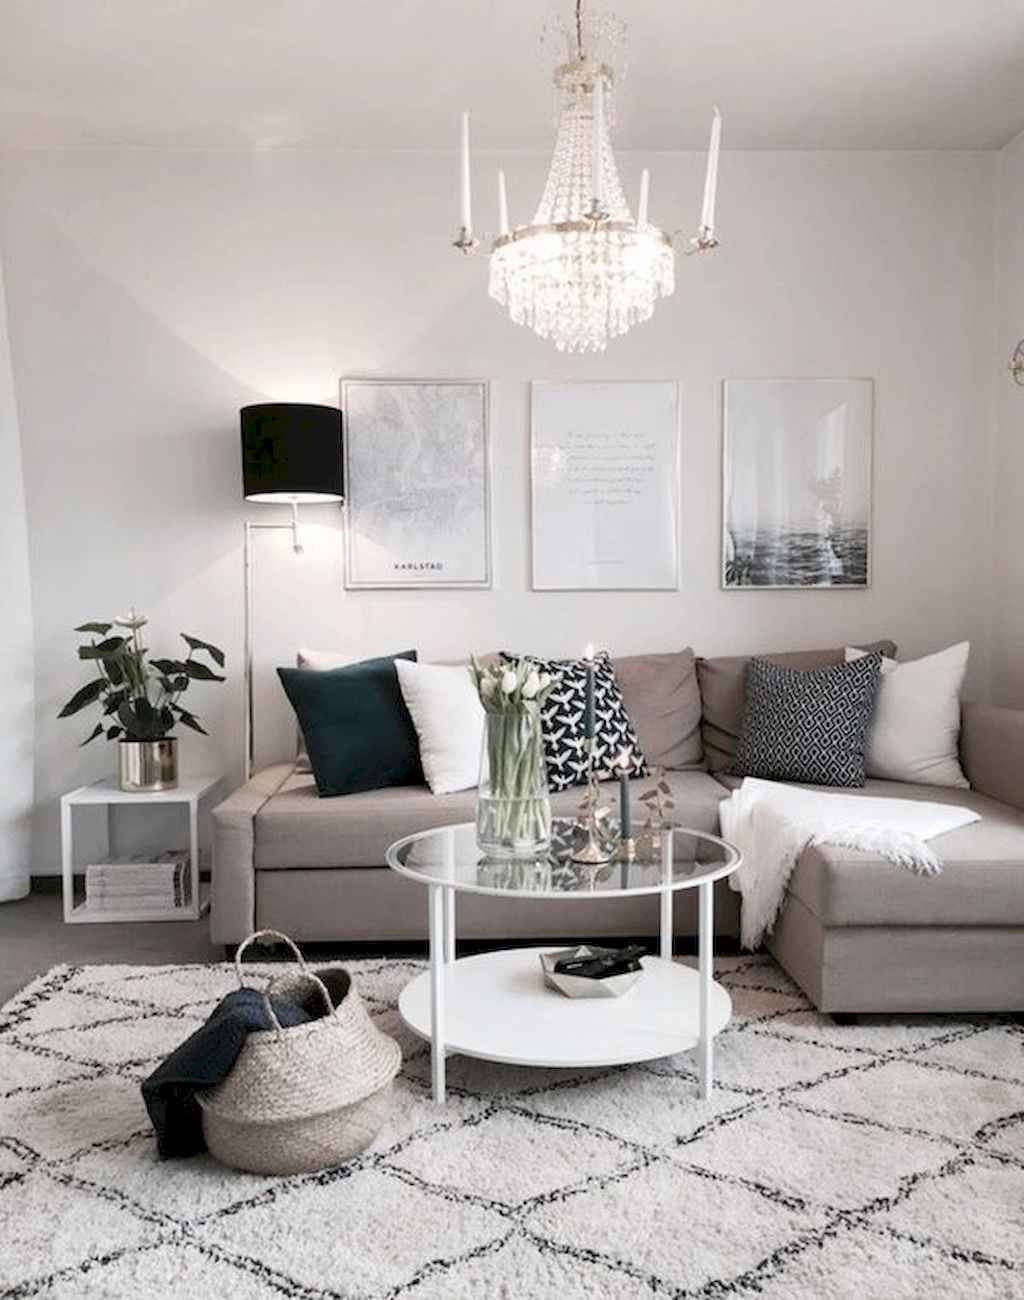 65 Modern Small Living Room Decor Ideas